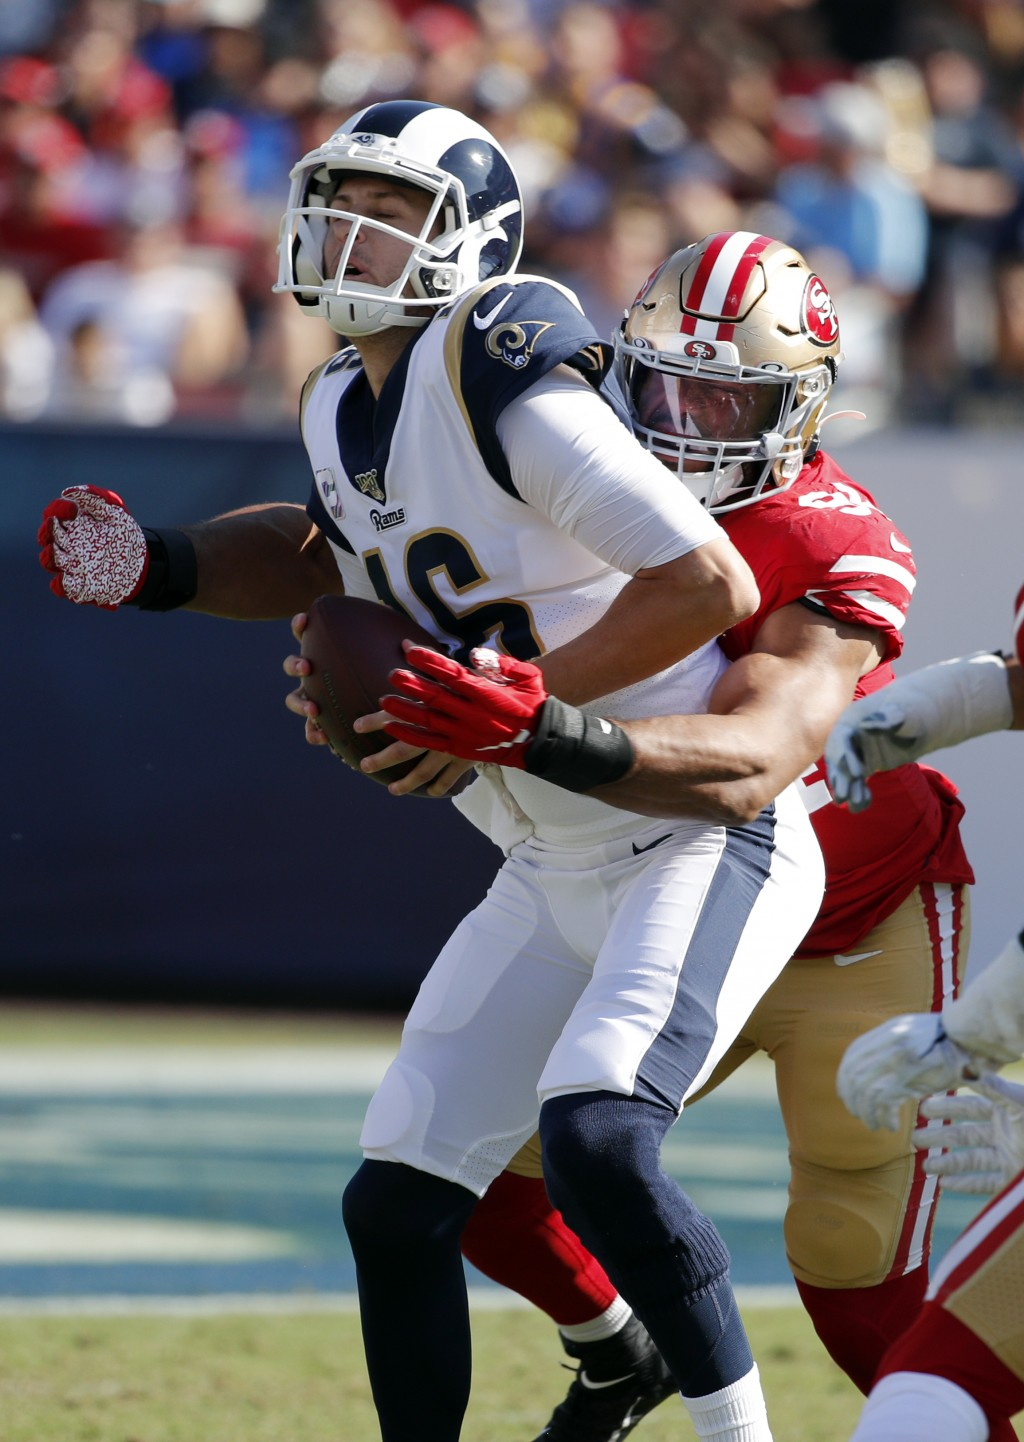 Los Angeles Rams quarterback Jared Goff (16) is sacked by San Francisco 49ers defensive end Solomon Thomas during the second half of an NFL football g...